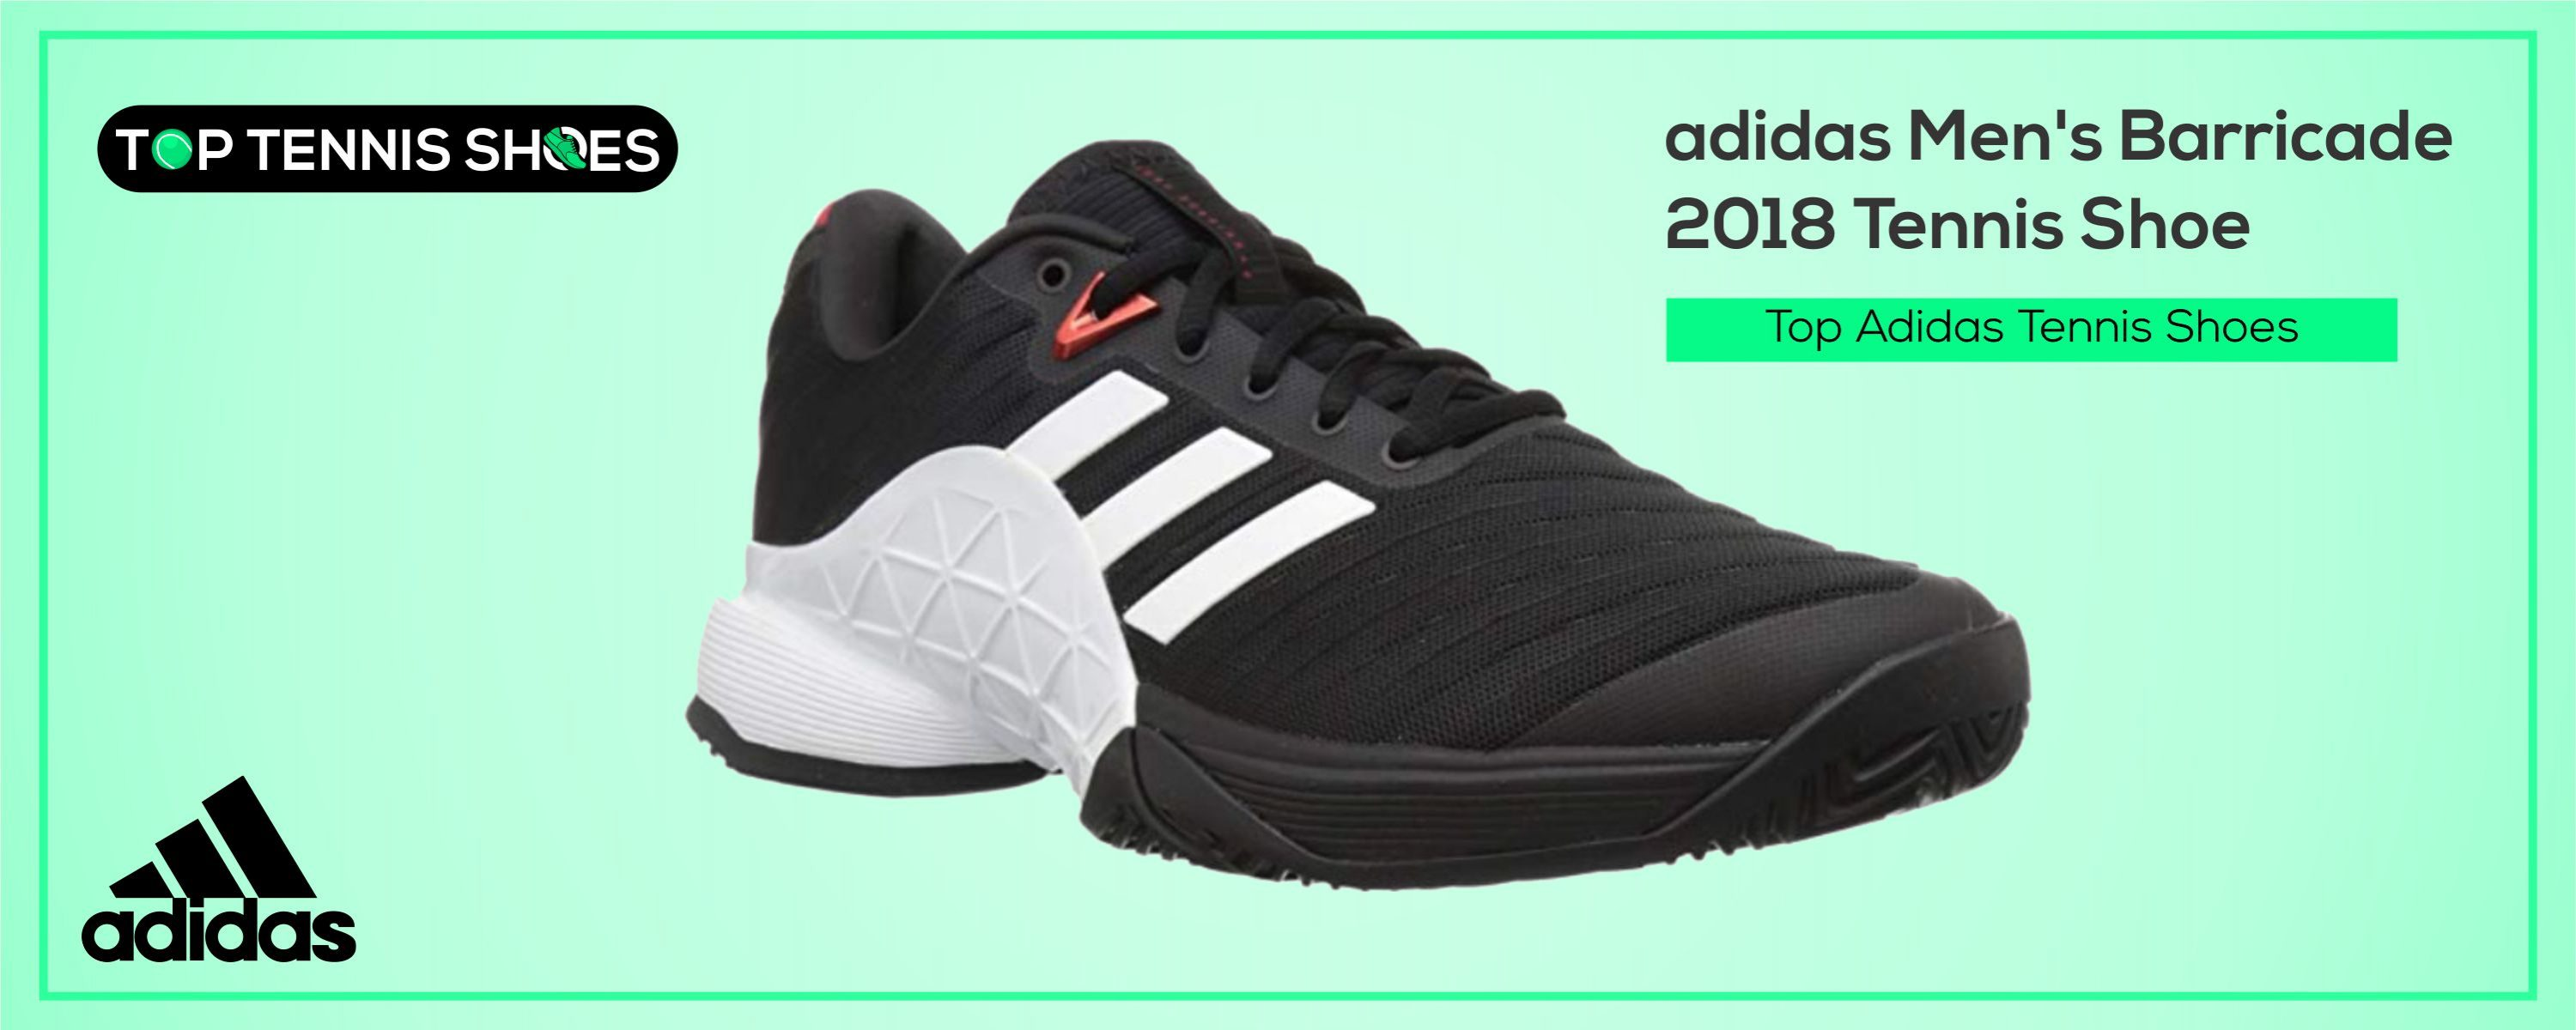 Top Adidas Tennis Shoes